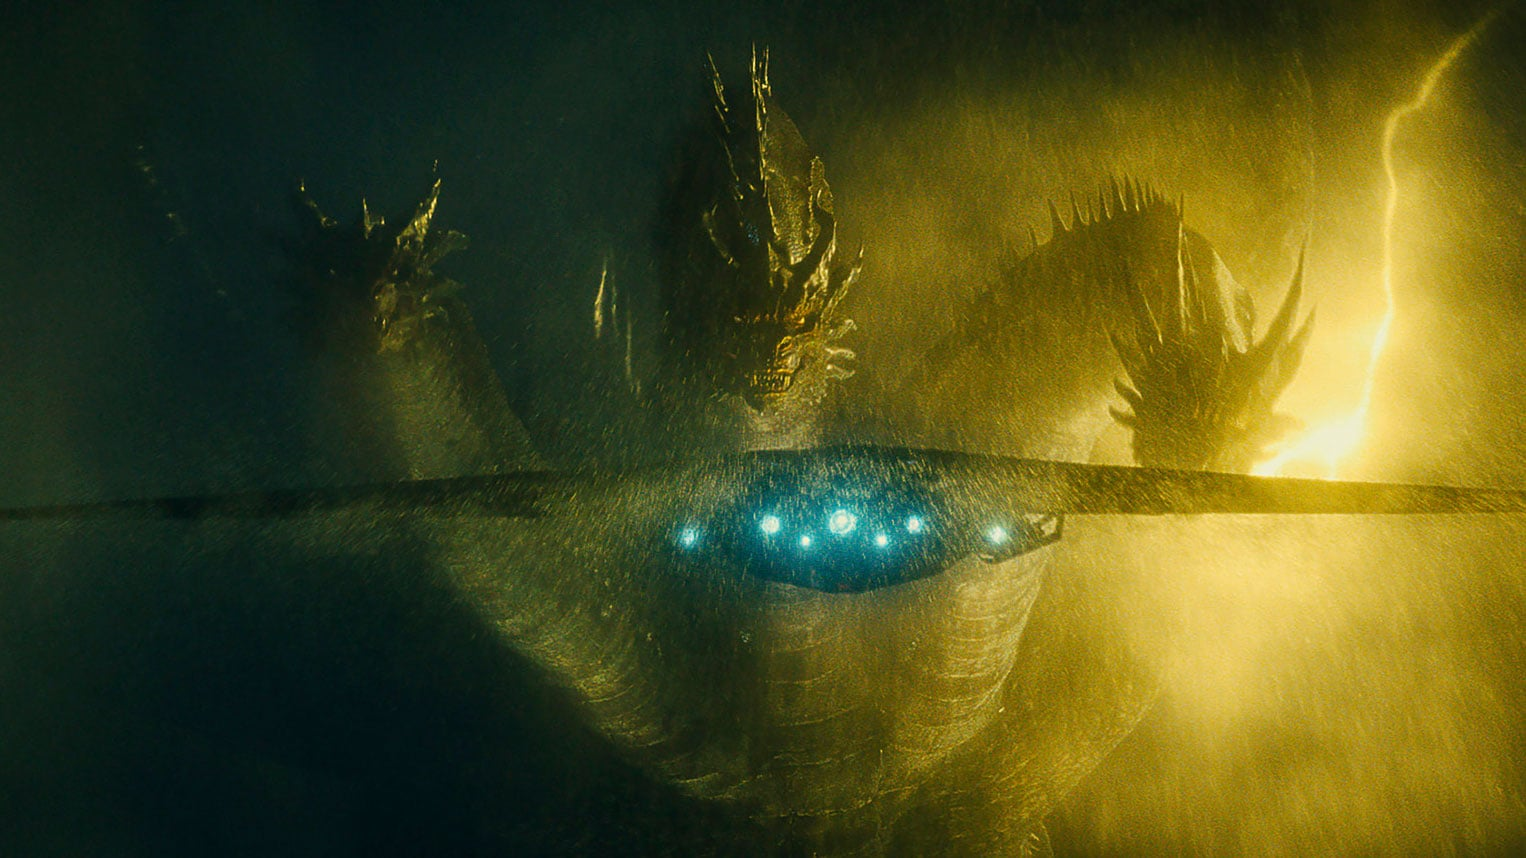 Godzilla: King of the Monsters backdrop